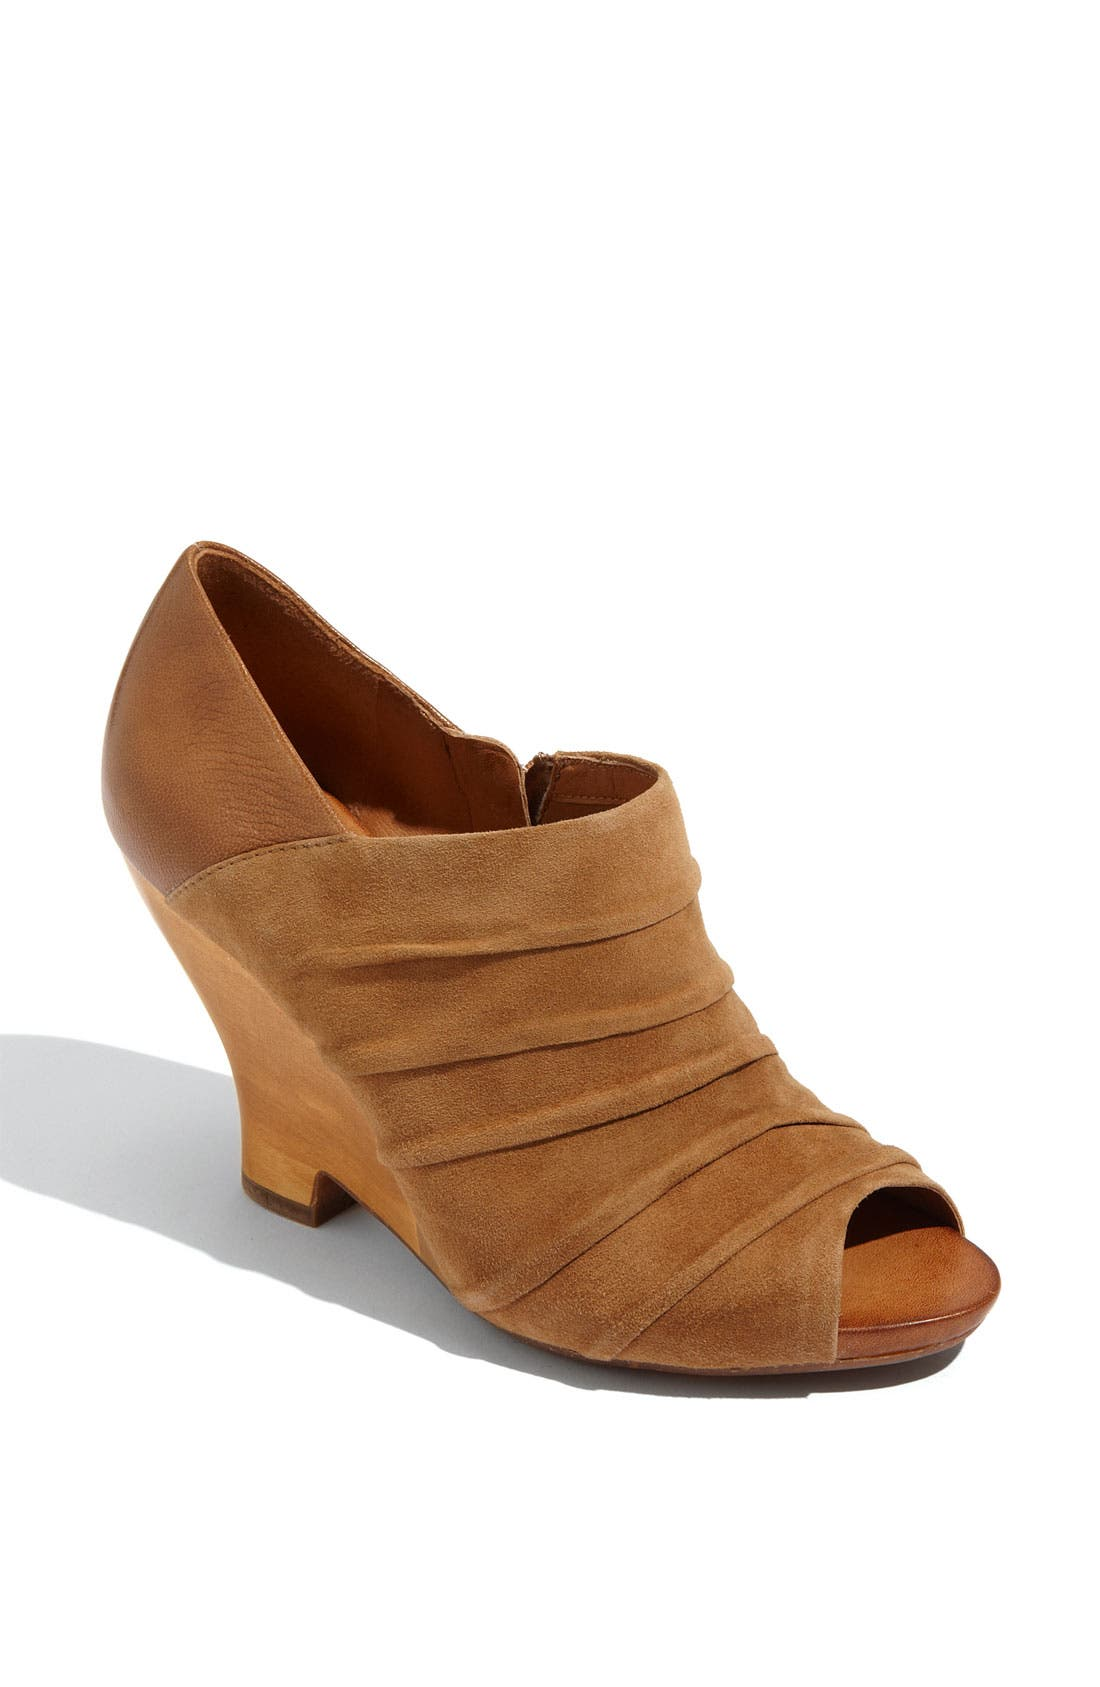 Alternate Image 1 Selected - Naya 'Genesis' Wedge Bootie